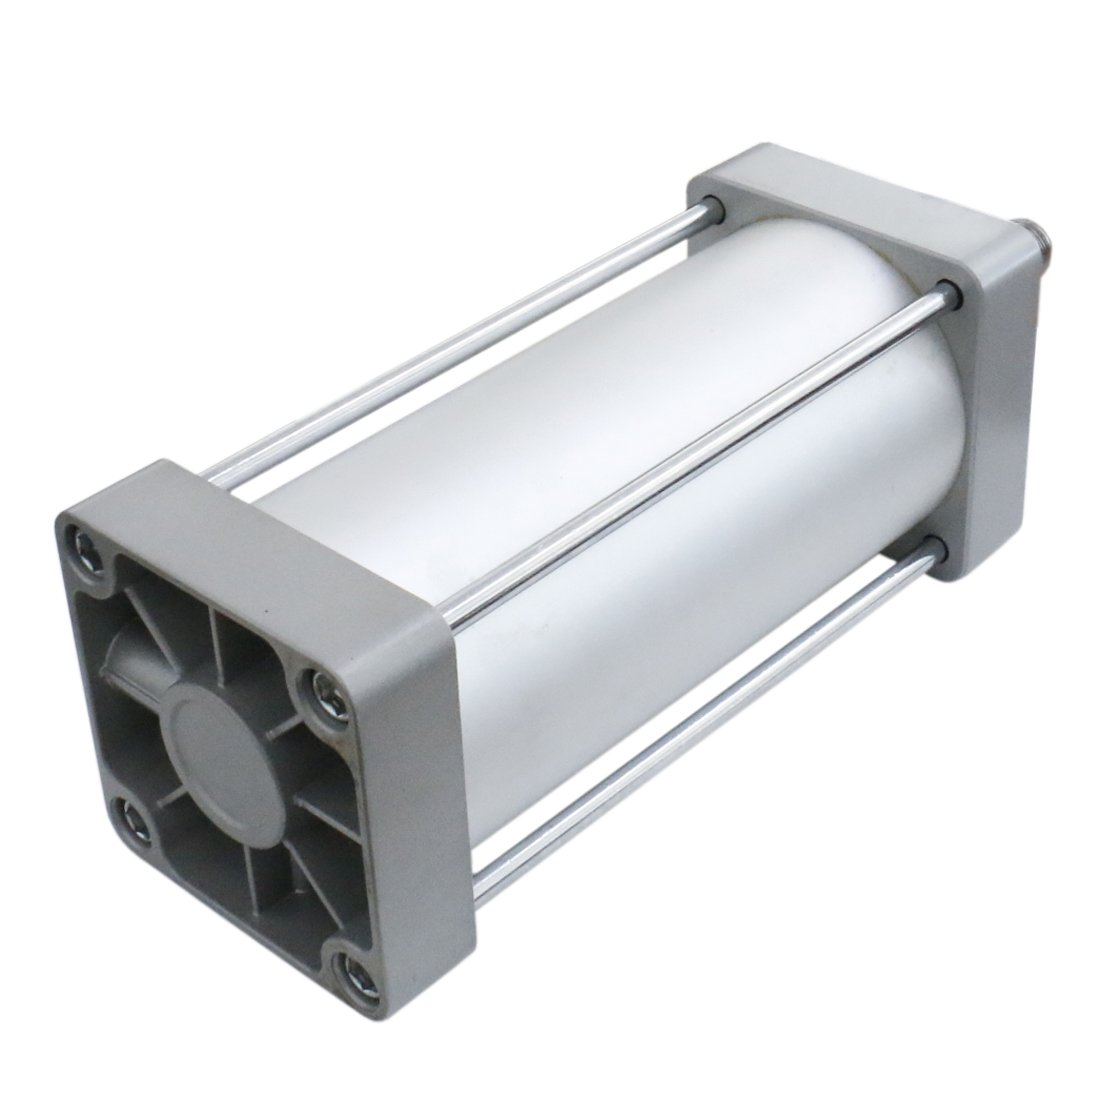 Baomain Pneumatic Air Cylinder SC 125-300 PT 1/2; Bore: 5'', Stroke: 12''; Screwed Piston Rod Dual Action by Baomain (Image #1)